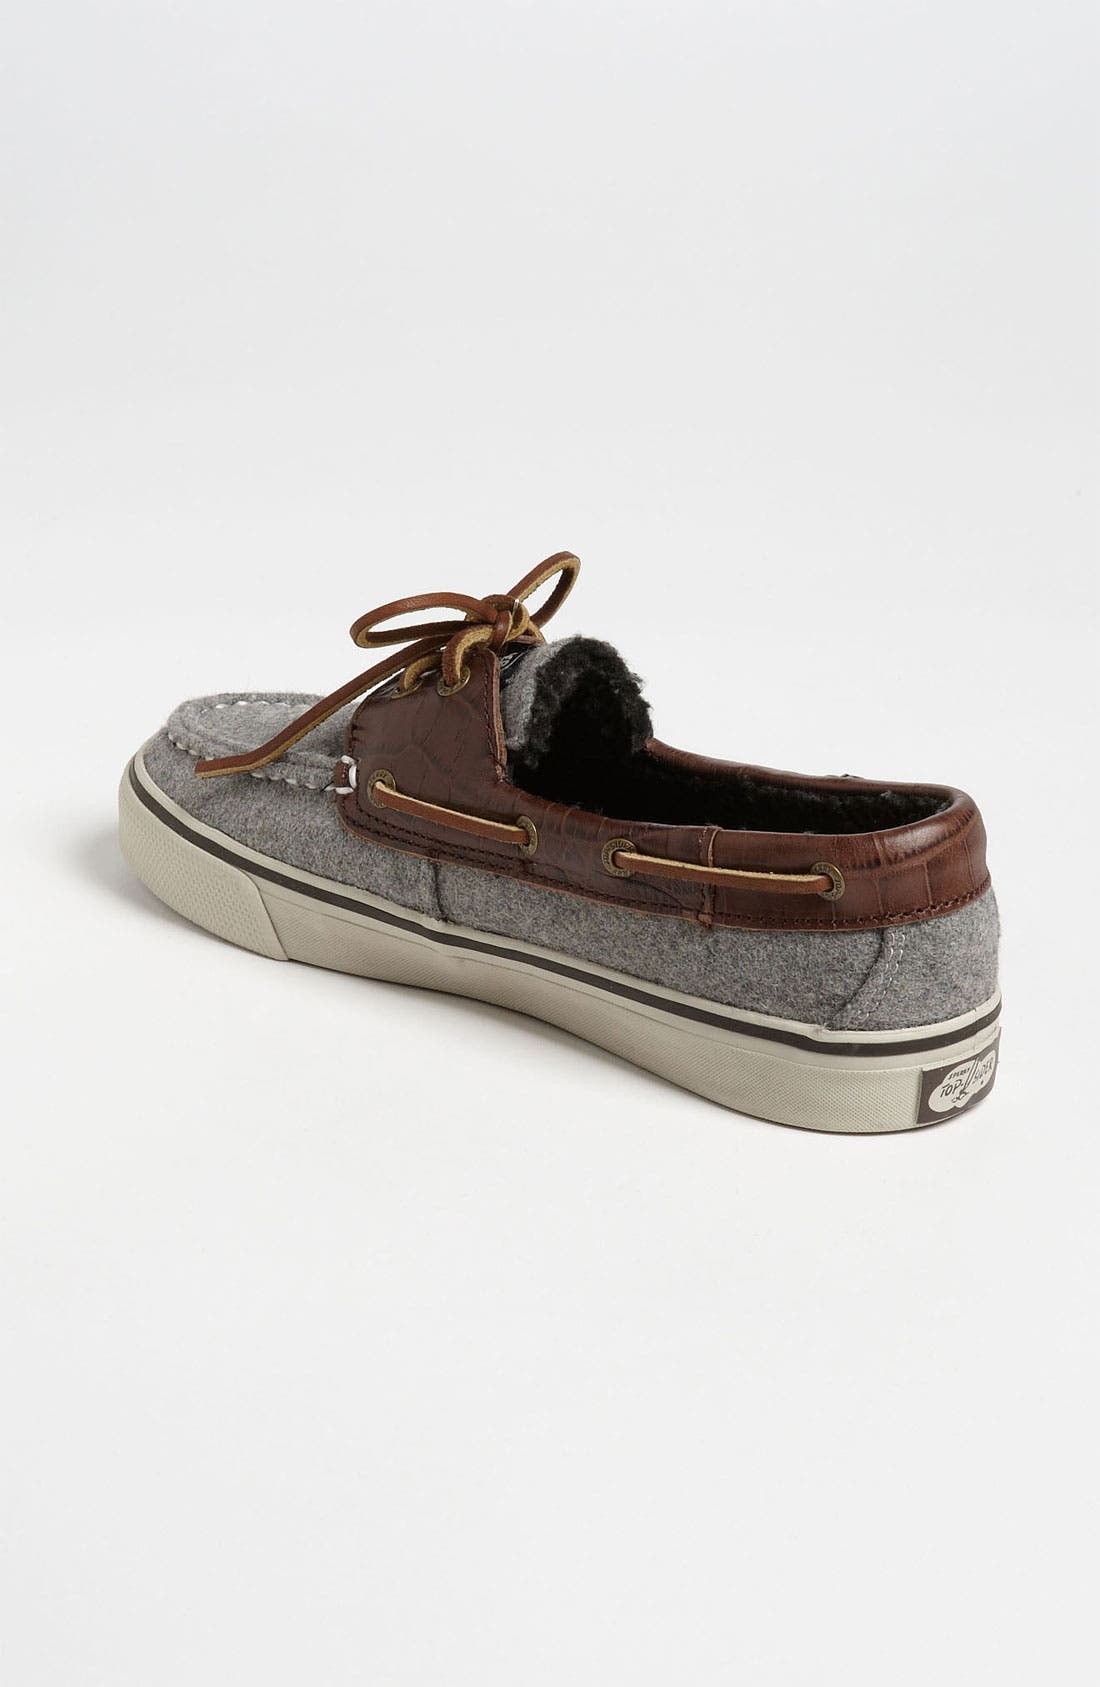 Top-Sider<sup>®</sup> 'Bahama' Sequined Boat Shoe,                             Alternate thumbnail 53, color,